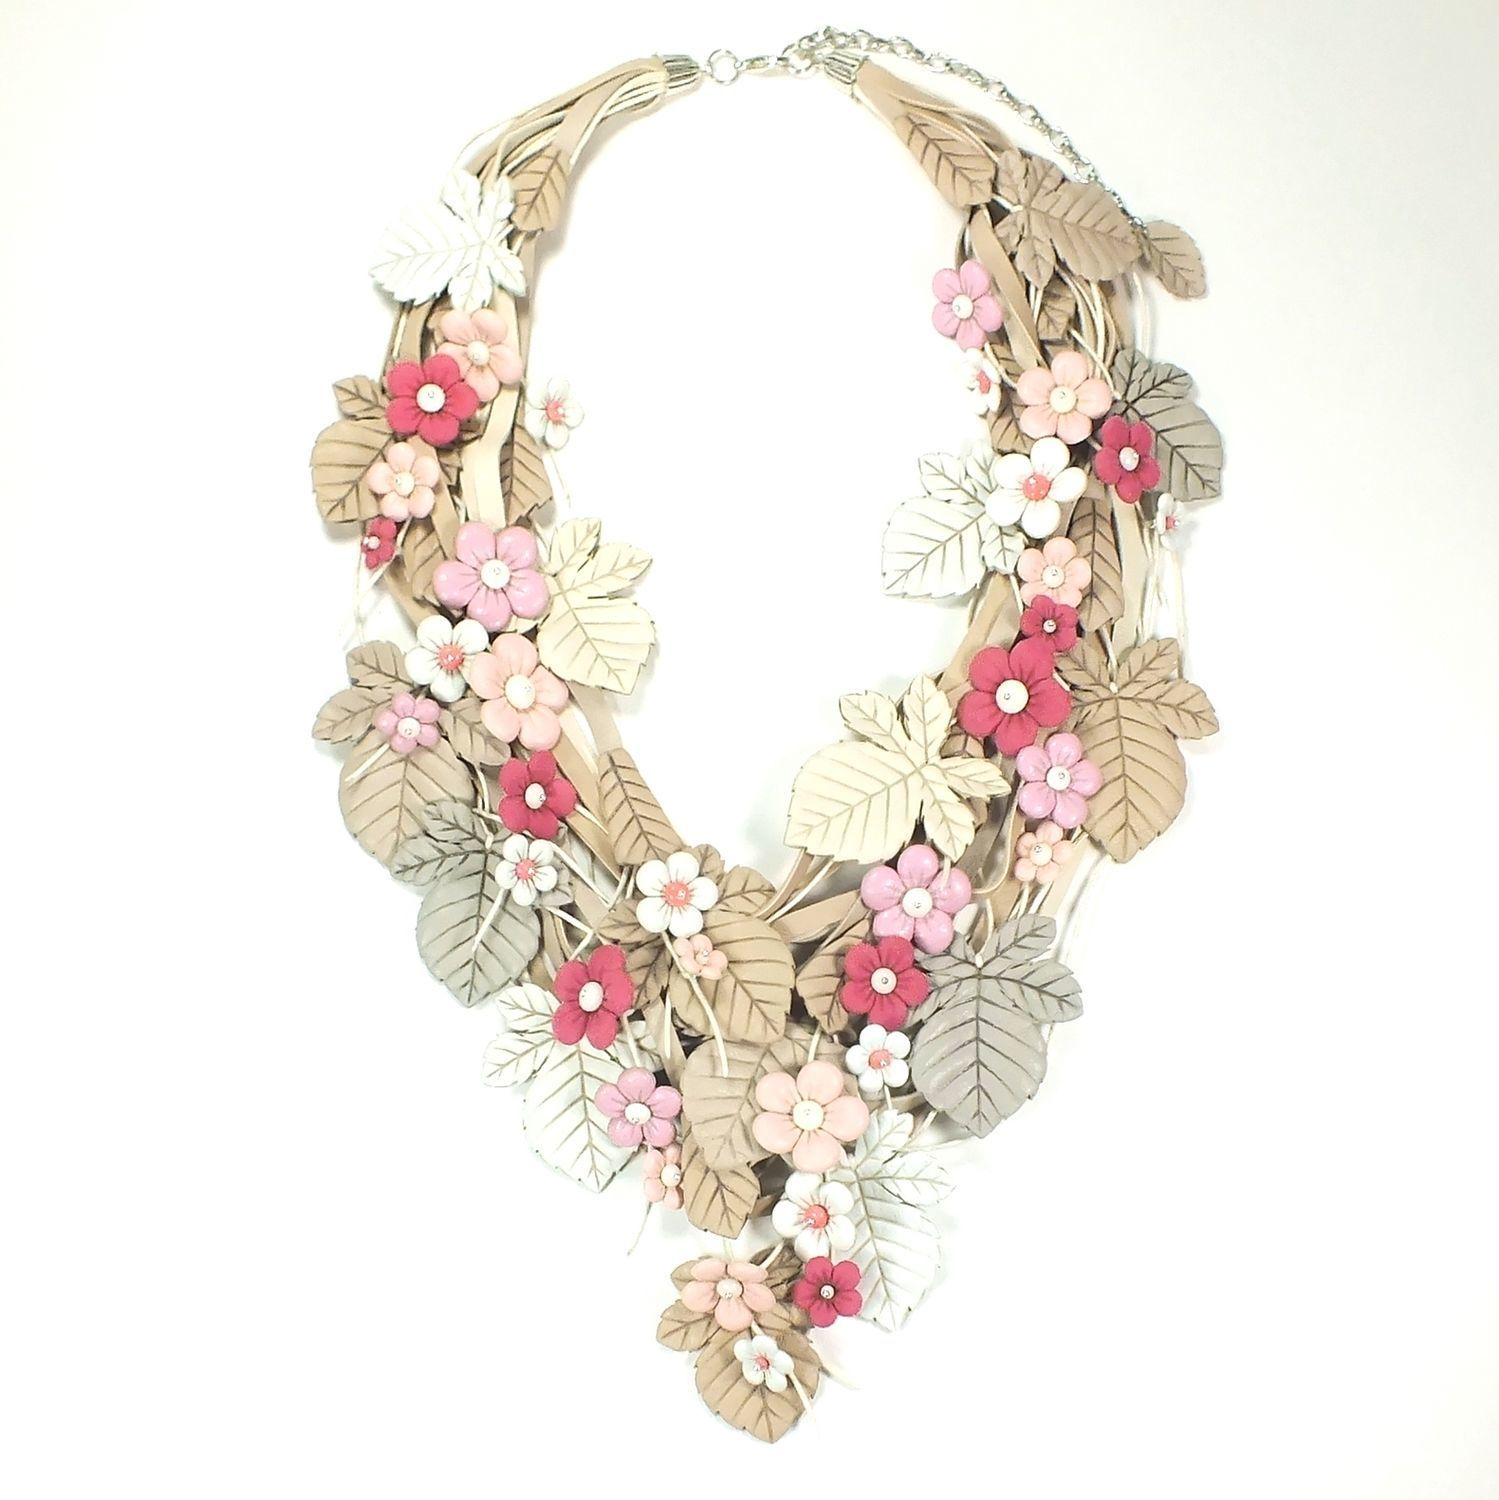 Powdery-White Soufflé Necklace of genuine leather and coral, Necklace, St. Petersburg,  Фото №1